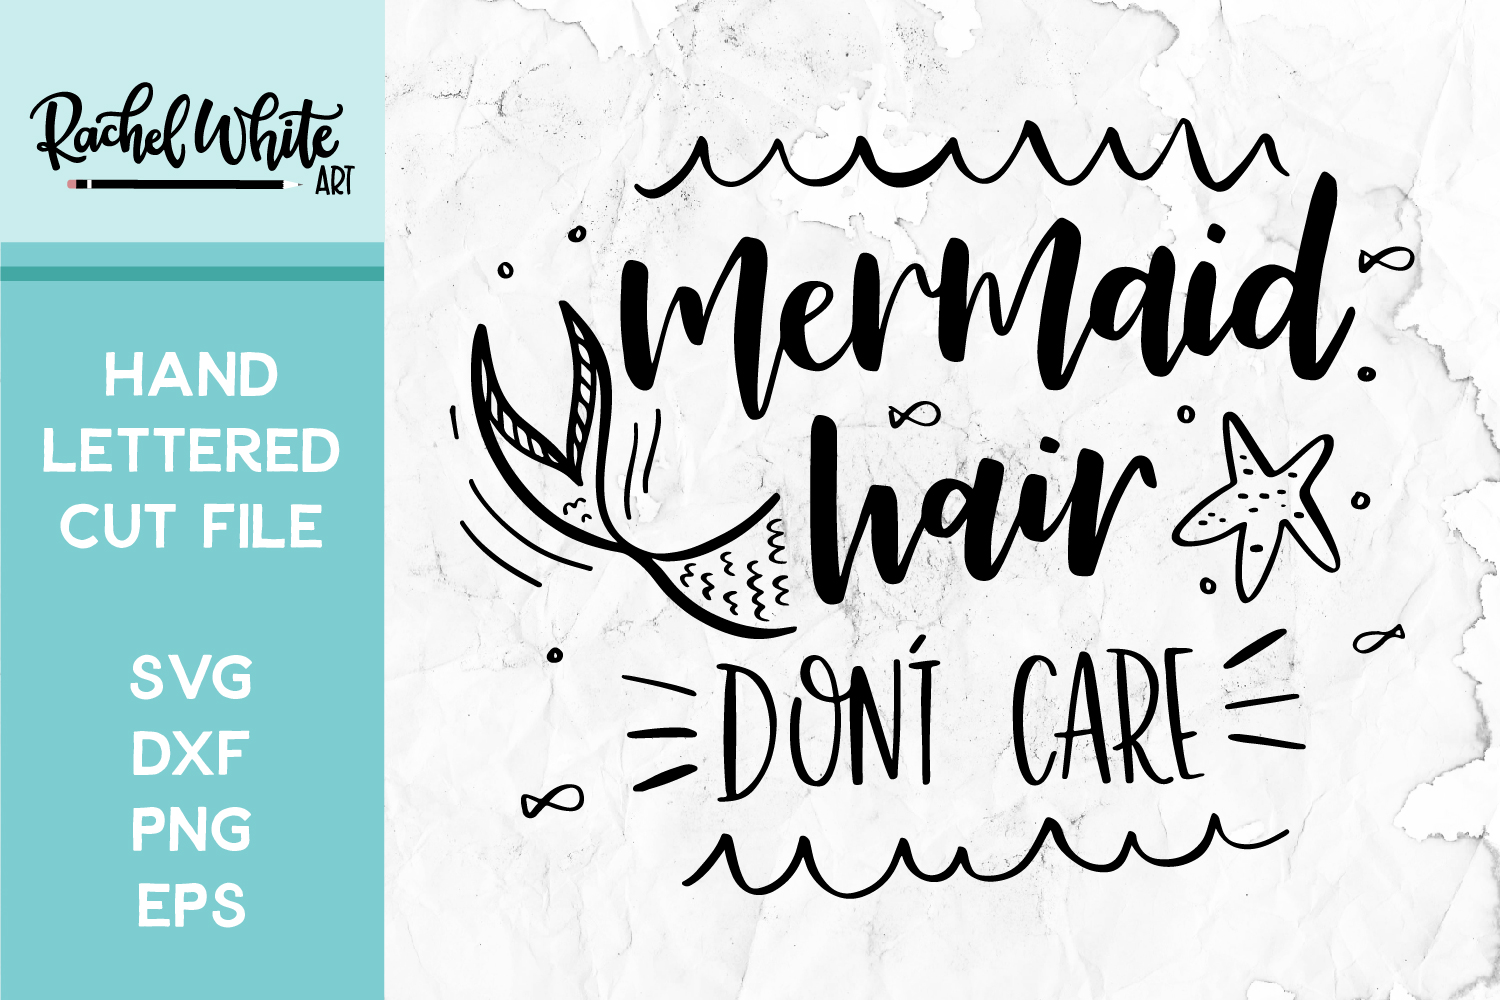 Cut File, Mermaid Hair Don't Care SVG example image 1